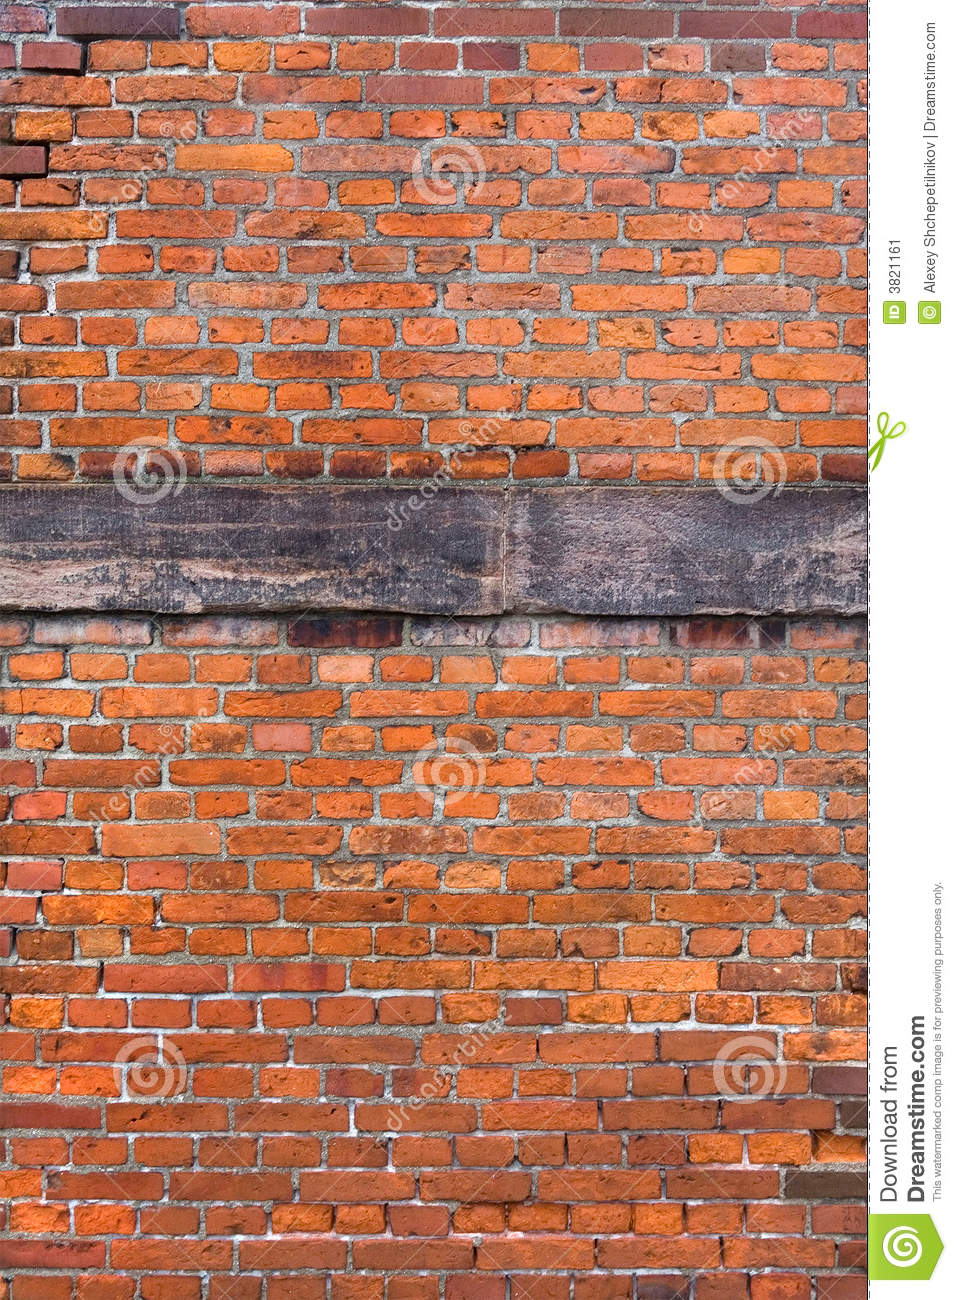 Reinforced Brick Wall Design : Red brick reinforced wall stock image